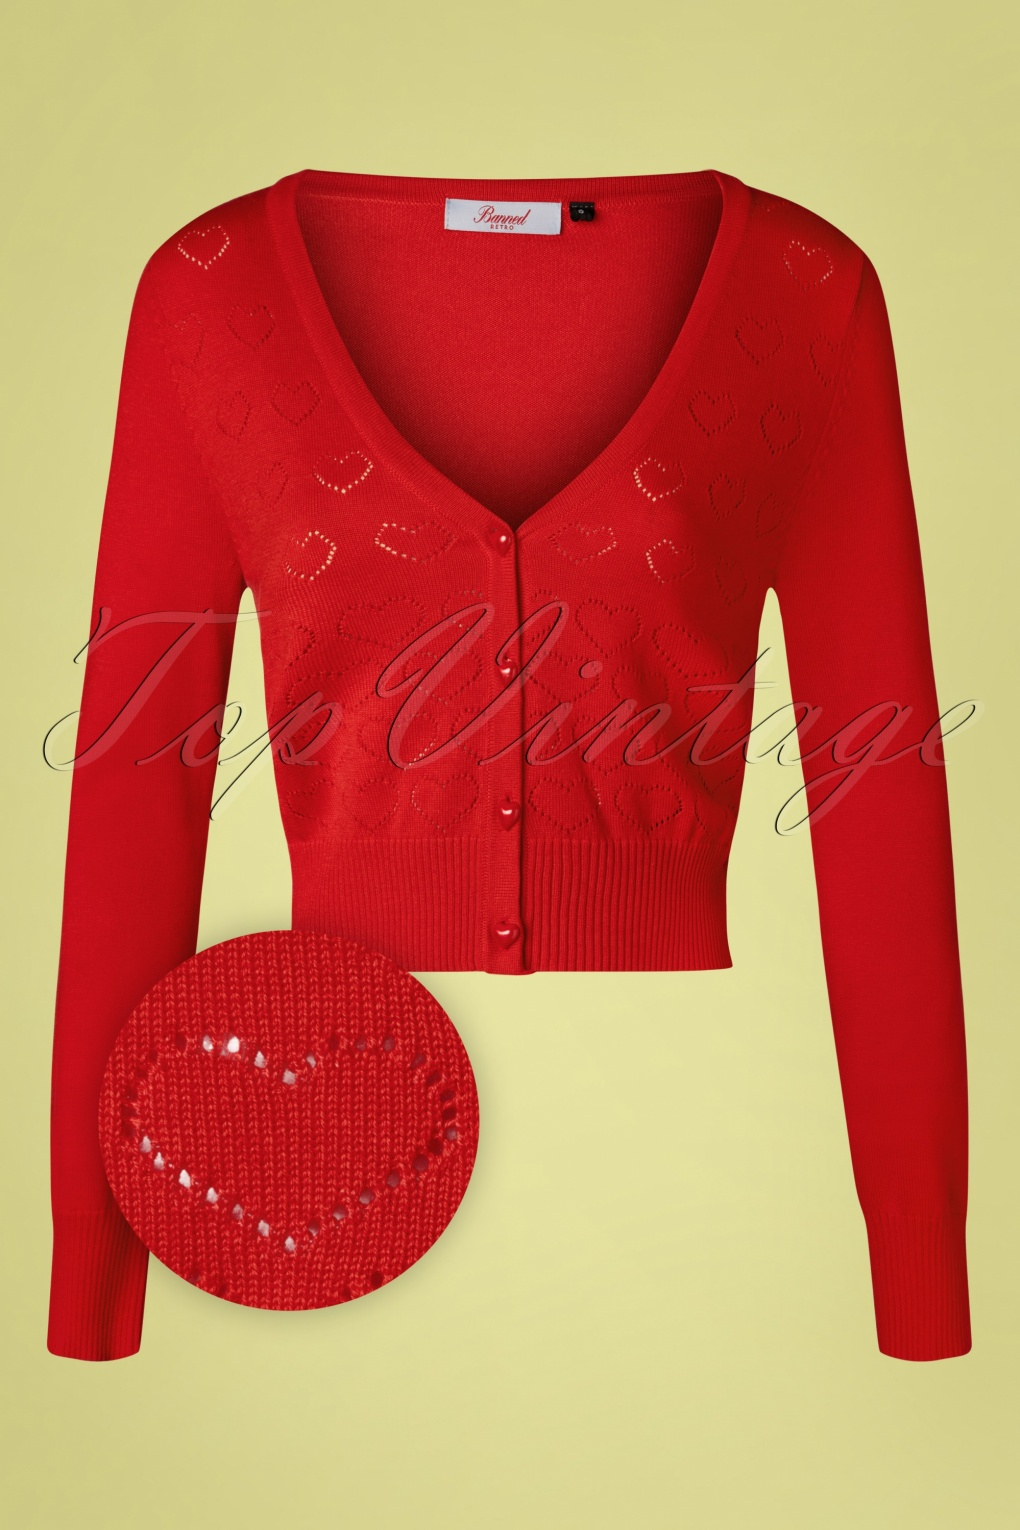 1950s Sweaters, 50s Cardigans, 50s Jumpers 50s Love Dream Cardigan in Lipstick Red £38.27 AT vintagedancer.com